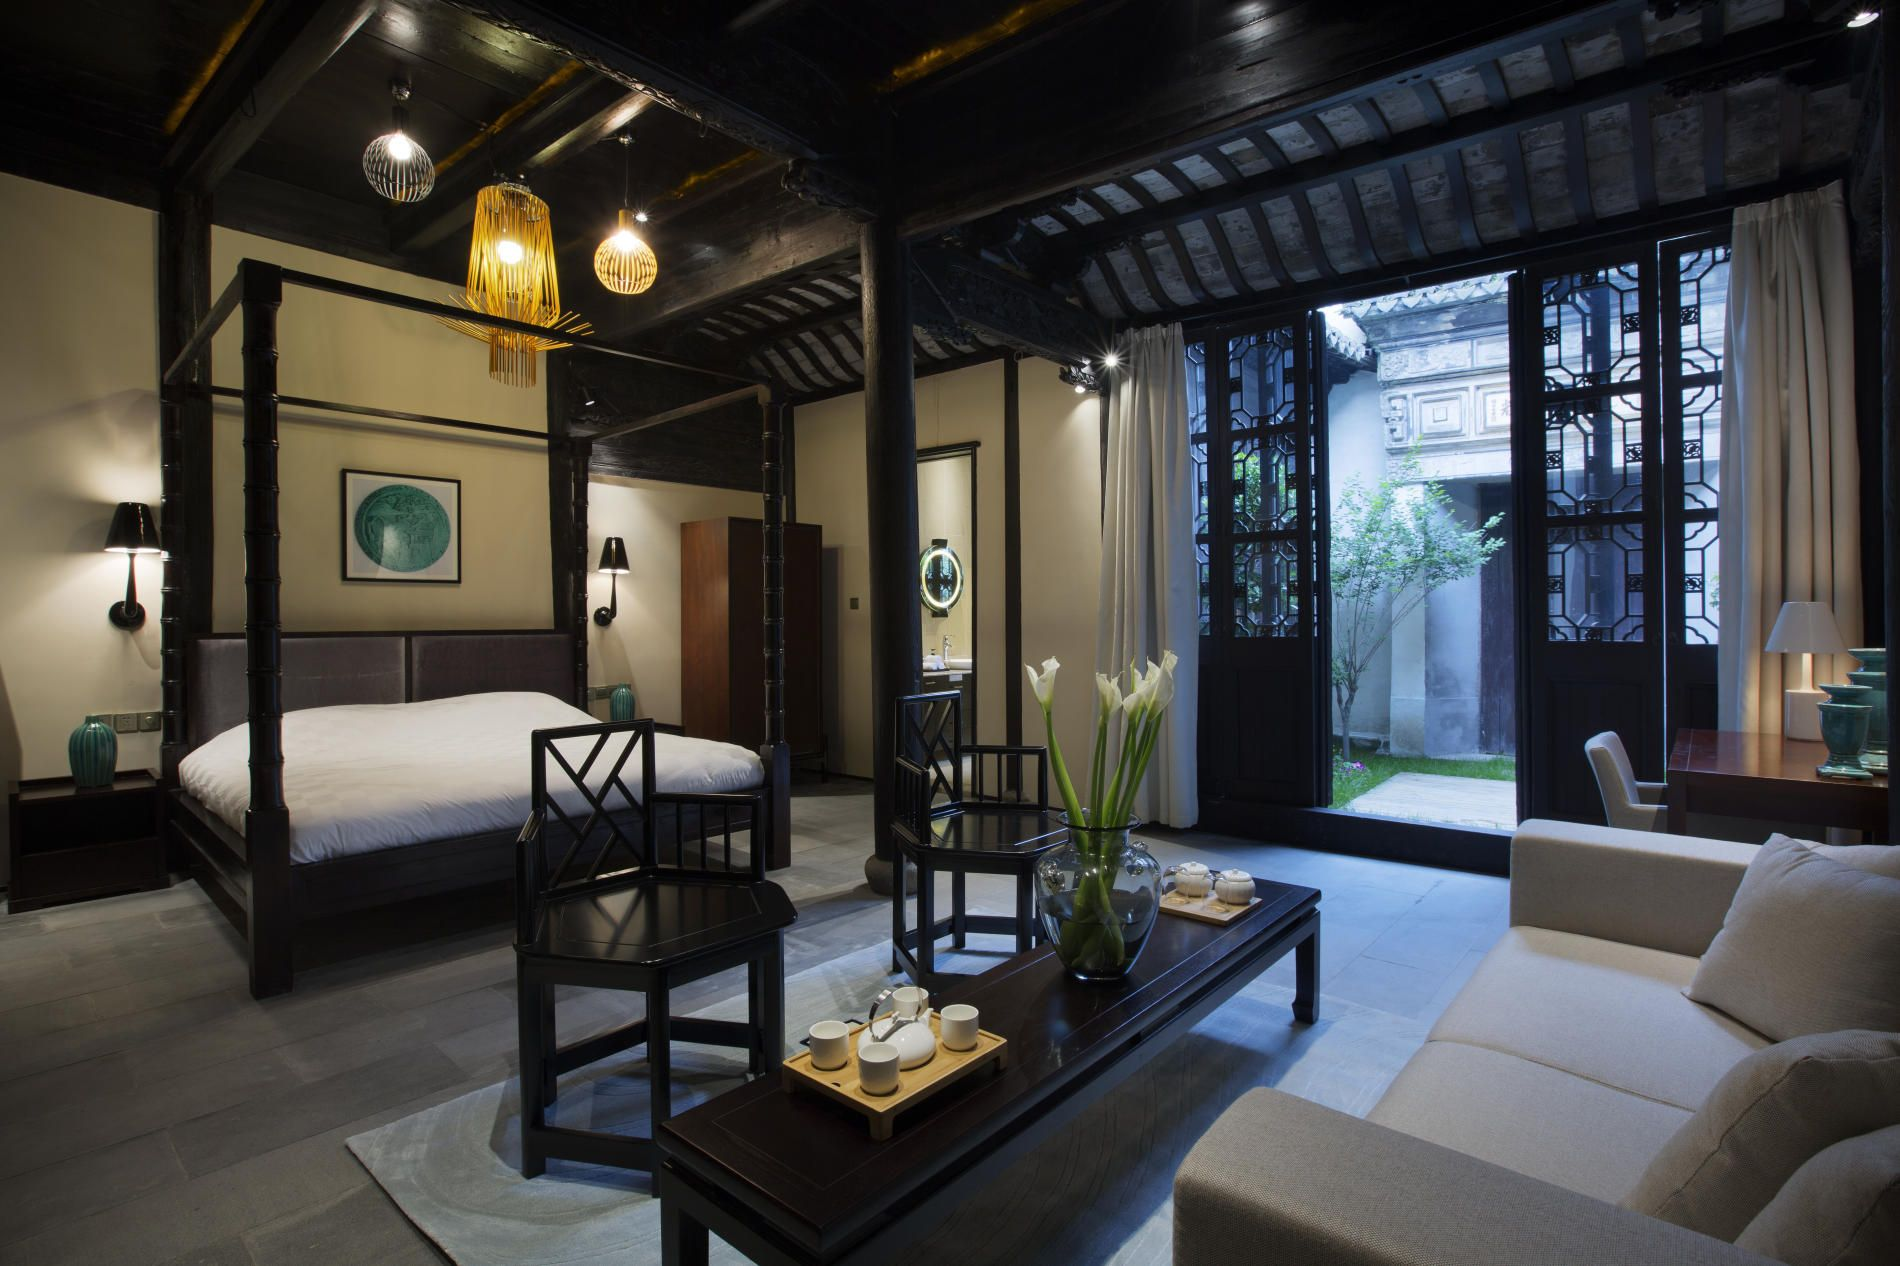 blossom hill hotel in zhouzhuang by dariel studio bed oh my - Traditional Hotel Decoration